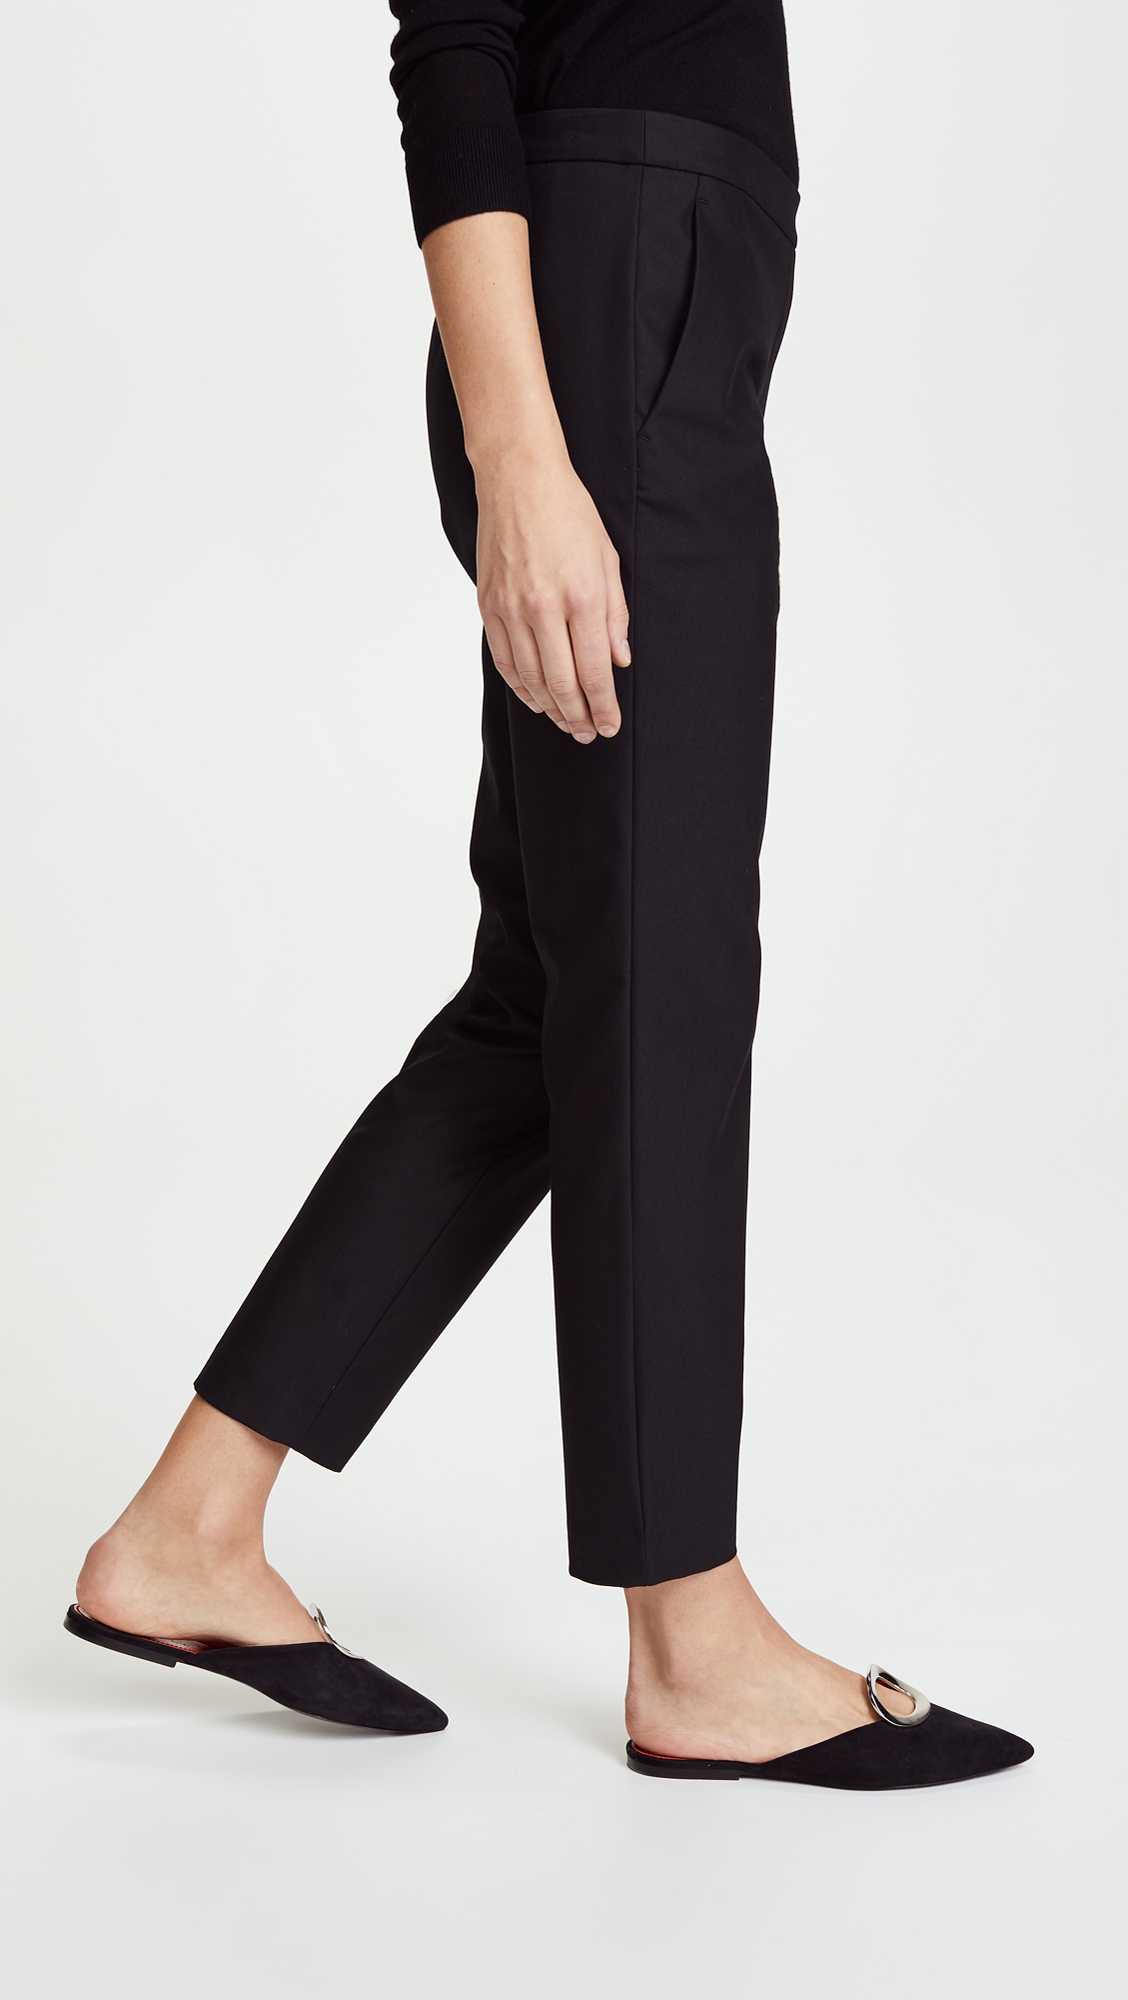 Theory Approach Thaniel Pants Shopbop D Island Casual Wrinkle Vintage